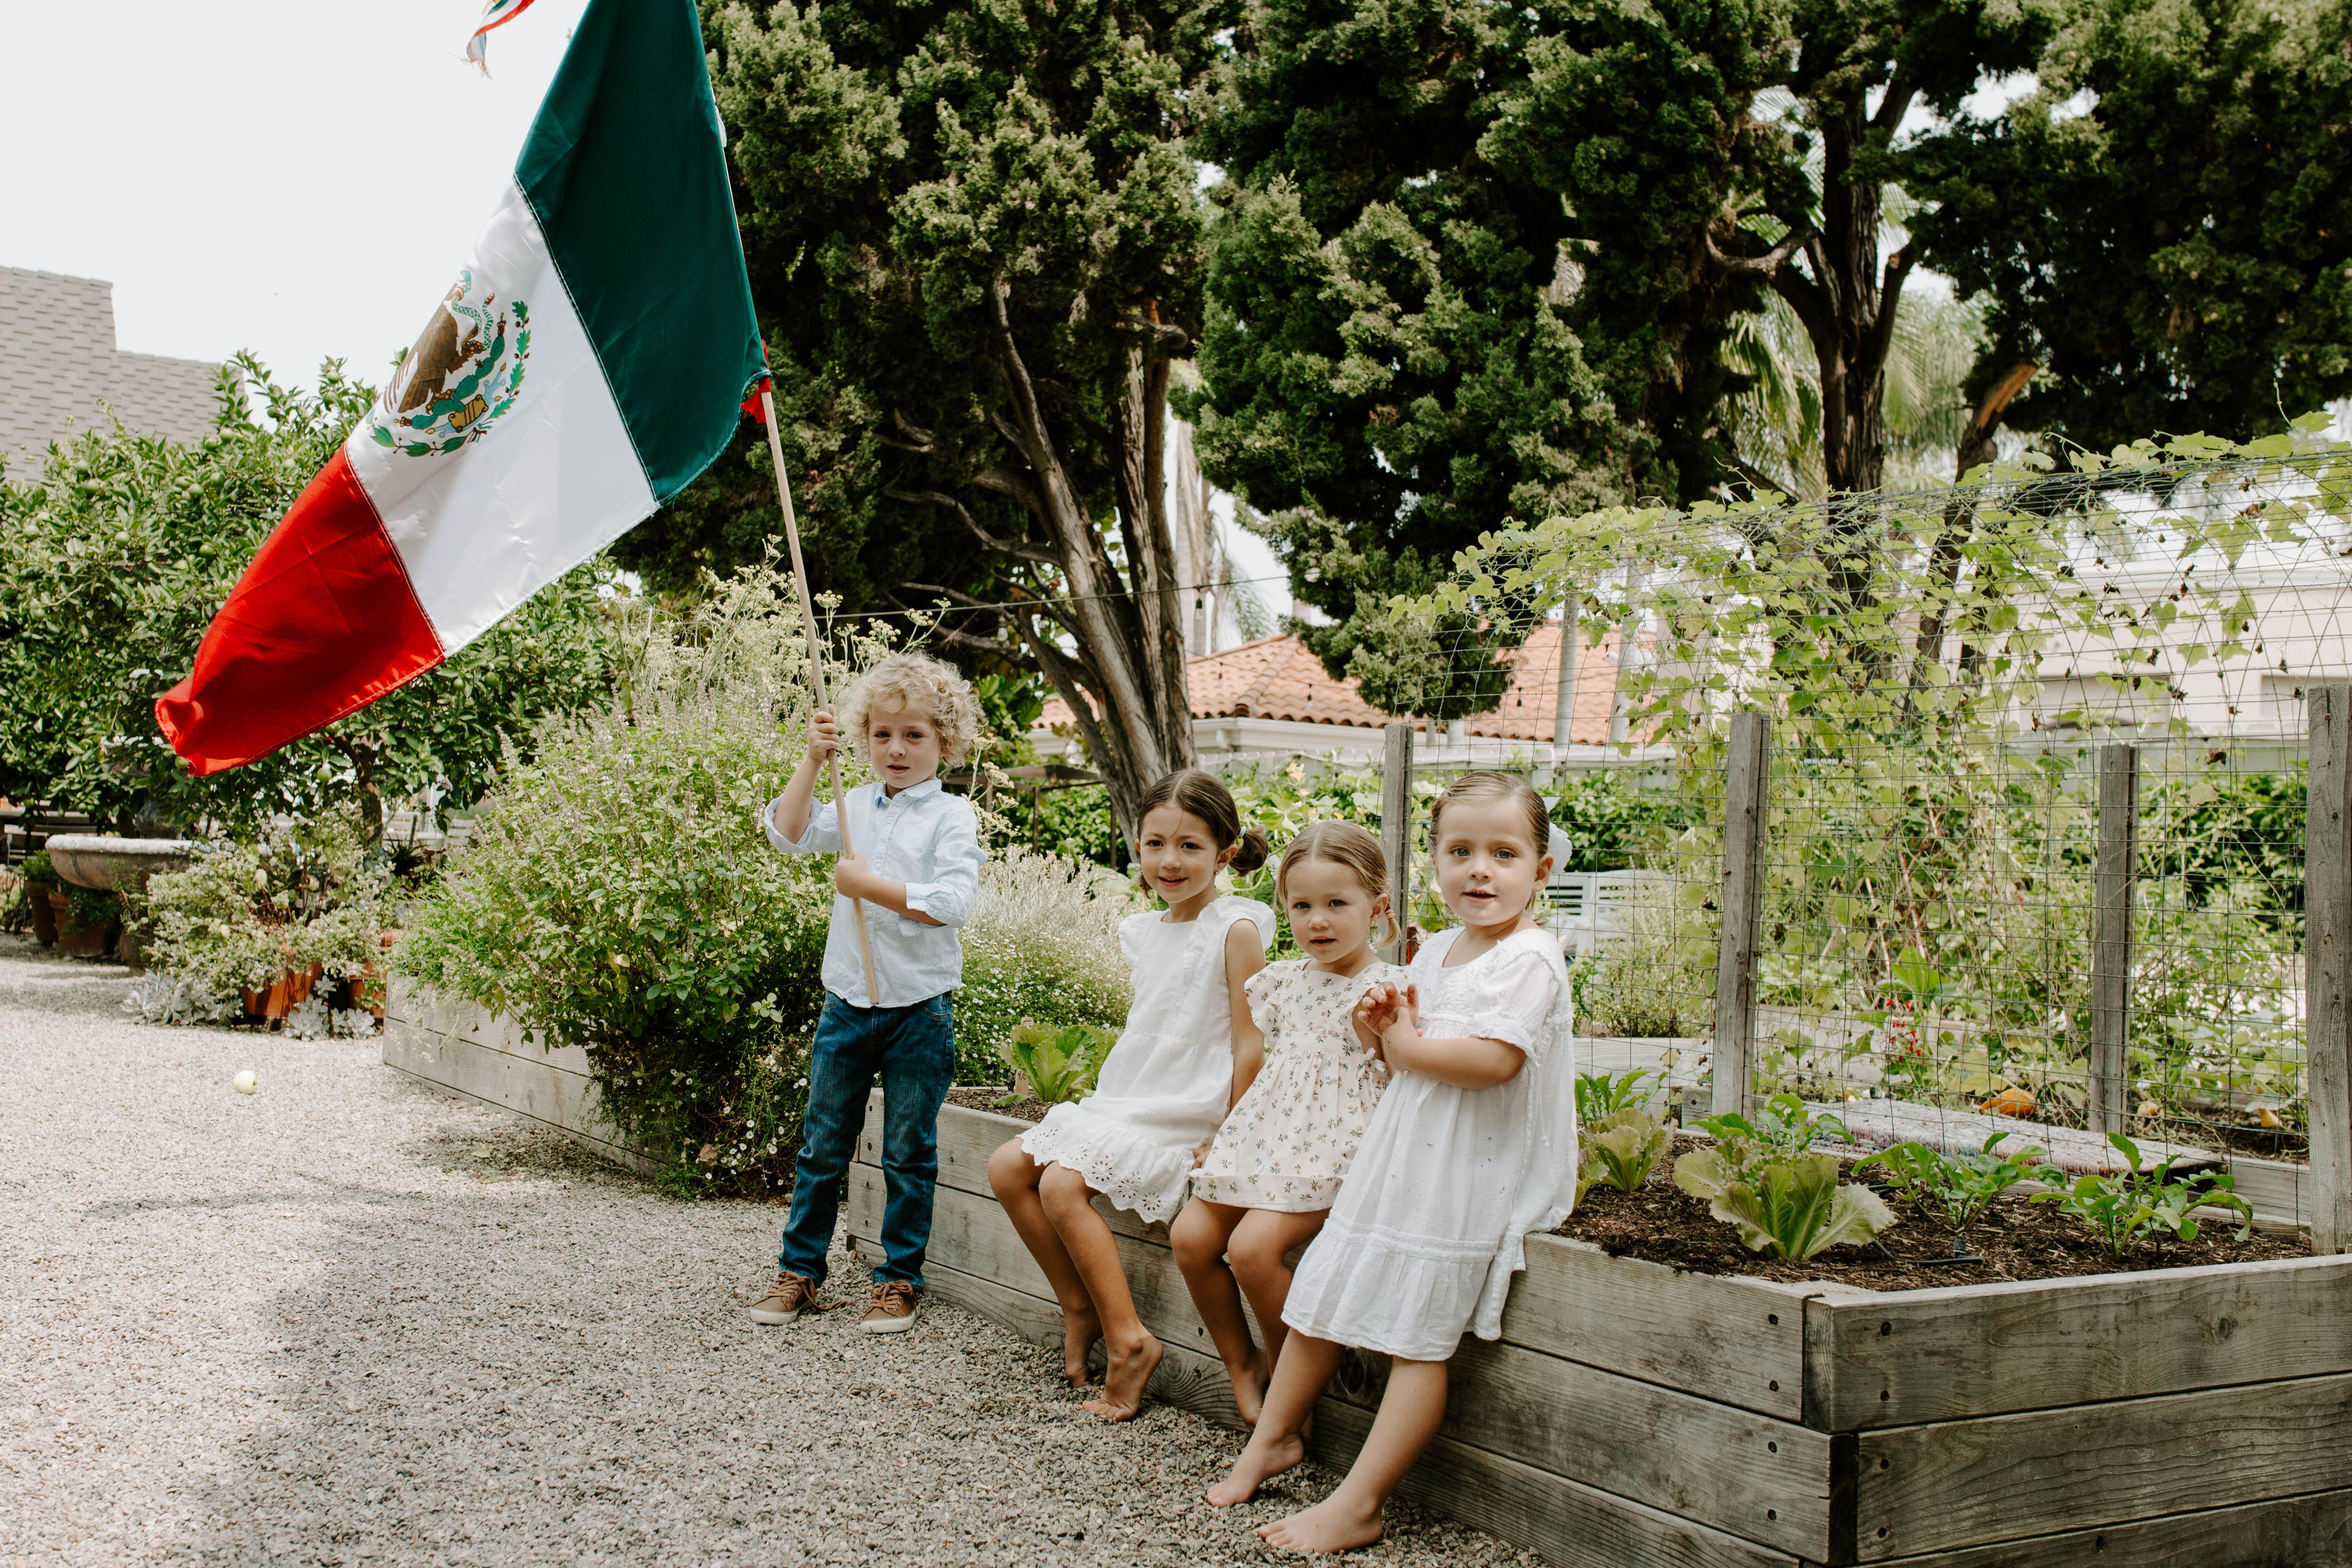 Children dressed for celebration pose with a Mexican flag in Valladolid's San Diego garden. (Photo: Cecilia Martin Del Campo)